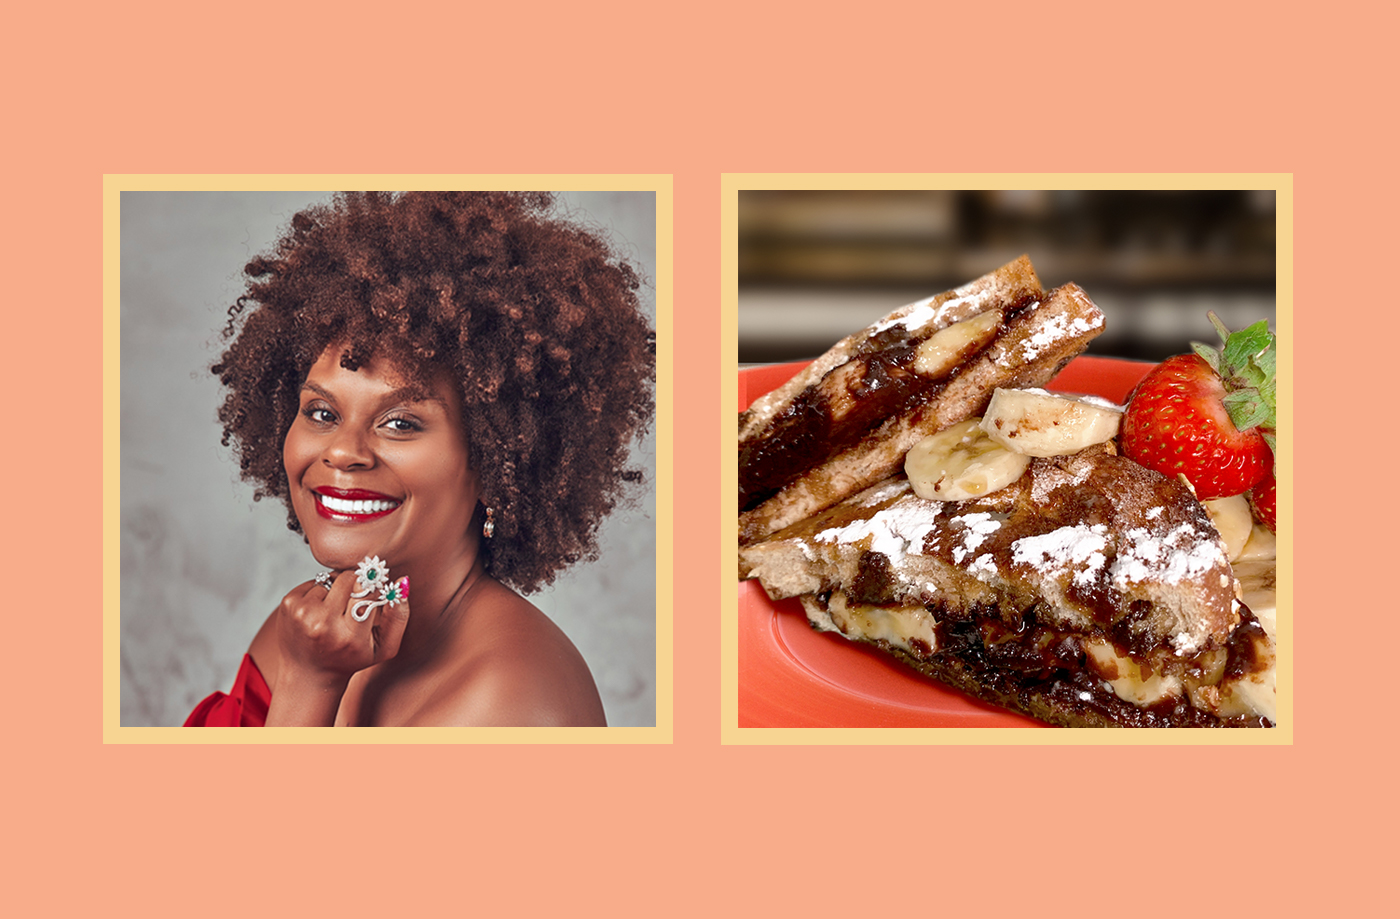 Thumbnail for Tabitha Brown's Chocolate Banana Cinnamon Toast Is What I Want To Eat for Breakfast Every Day